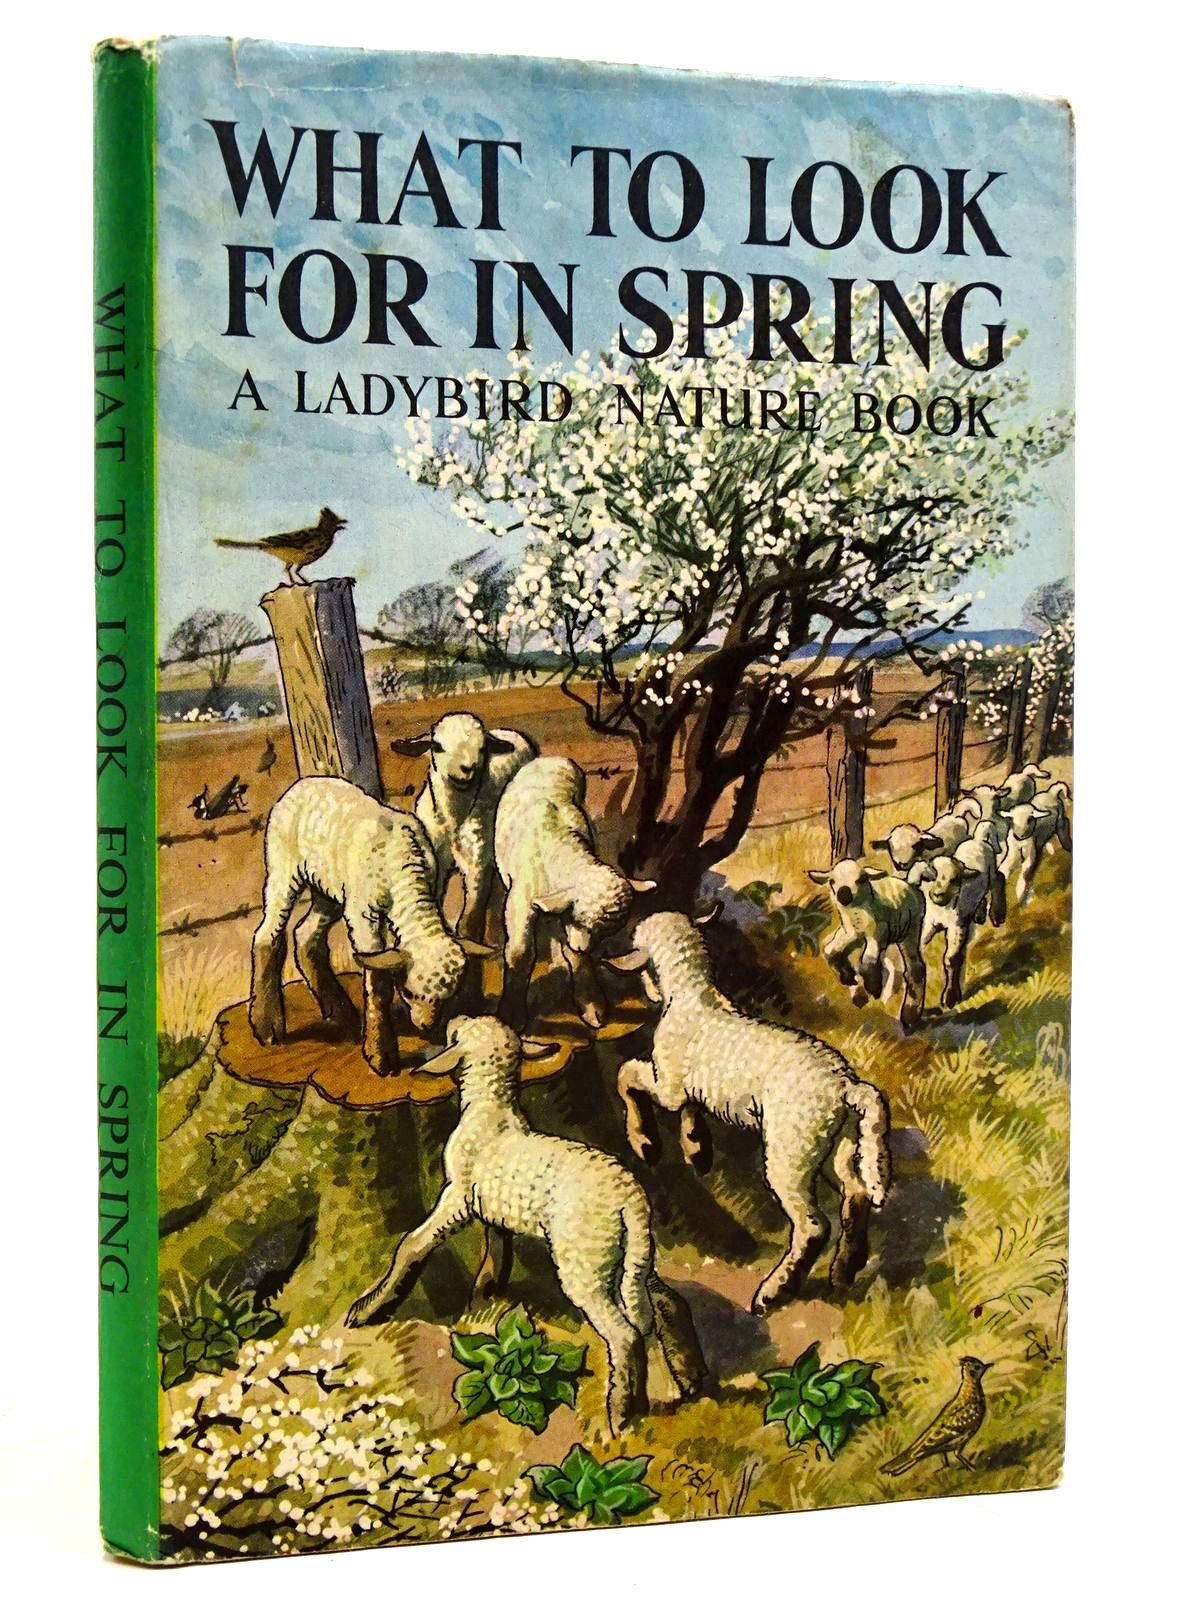 Photo of WHAT TO LOOK FOR IN SPRING written by Watson, E.L. Grant illustrated by Tunnicliffe, C.F. published by Wills & Hepworth Ltd. (STOCK CODE: 2131541)  for sale by Stella & Rose's Books